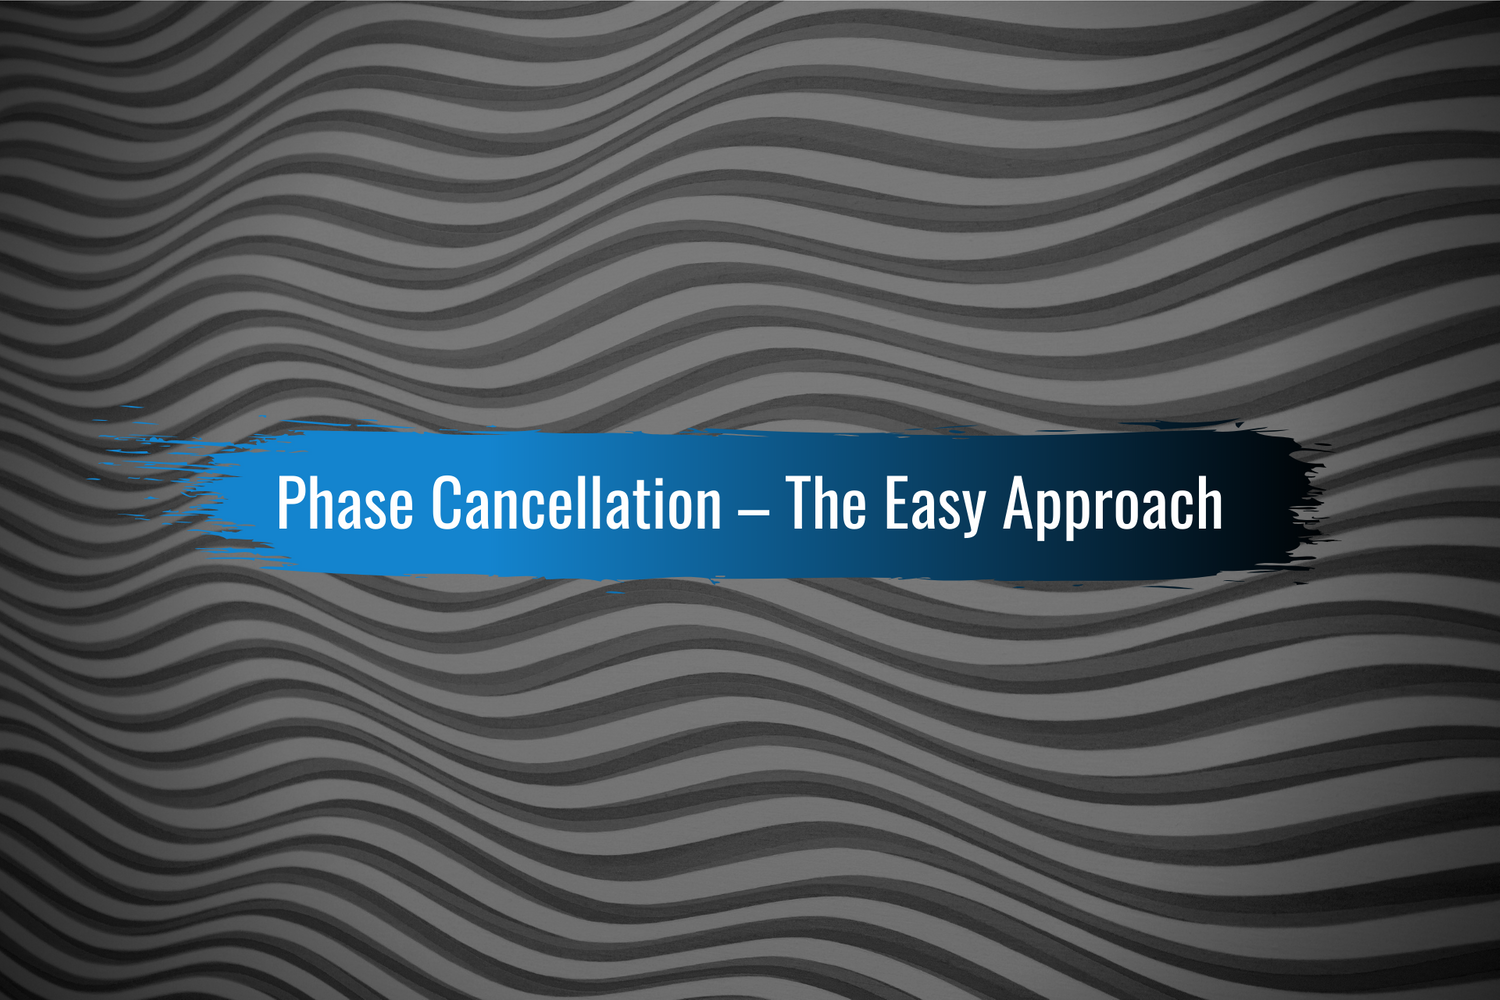 Phase Cancellation Made Easy